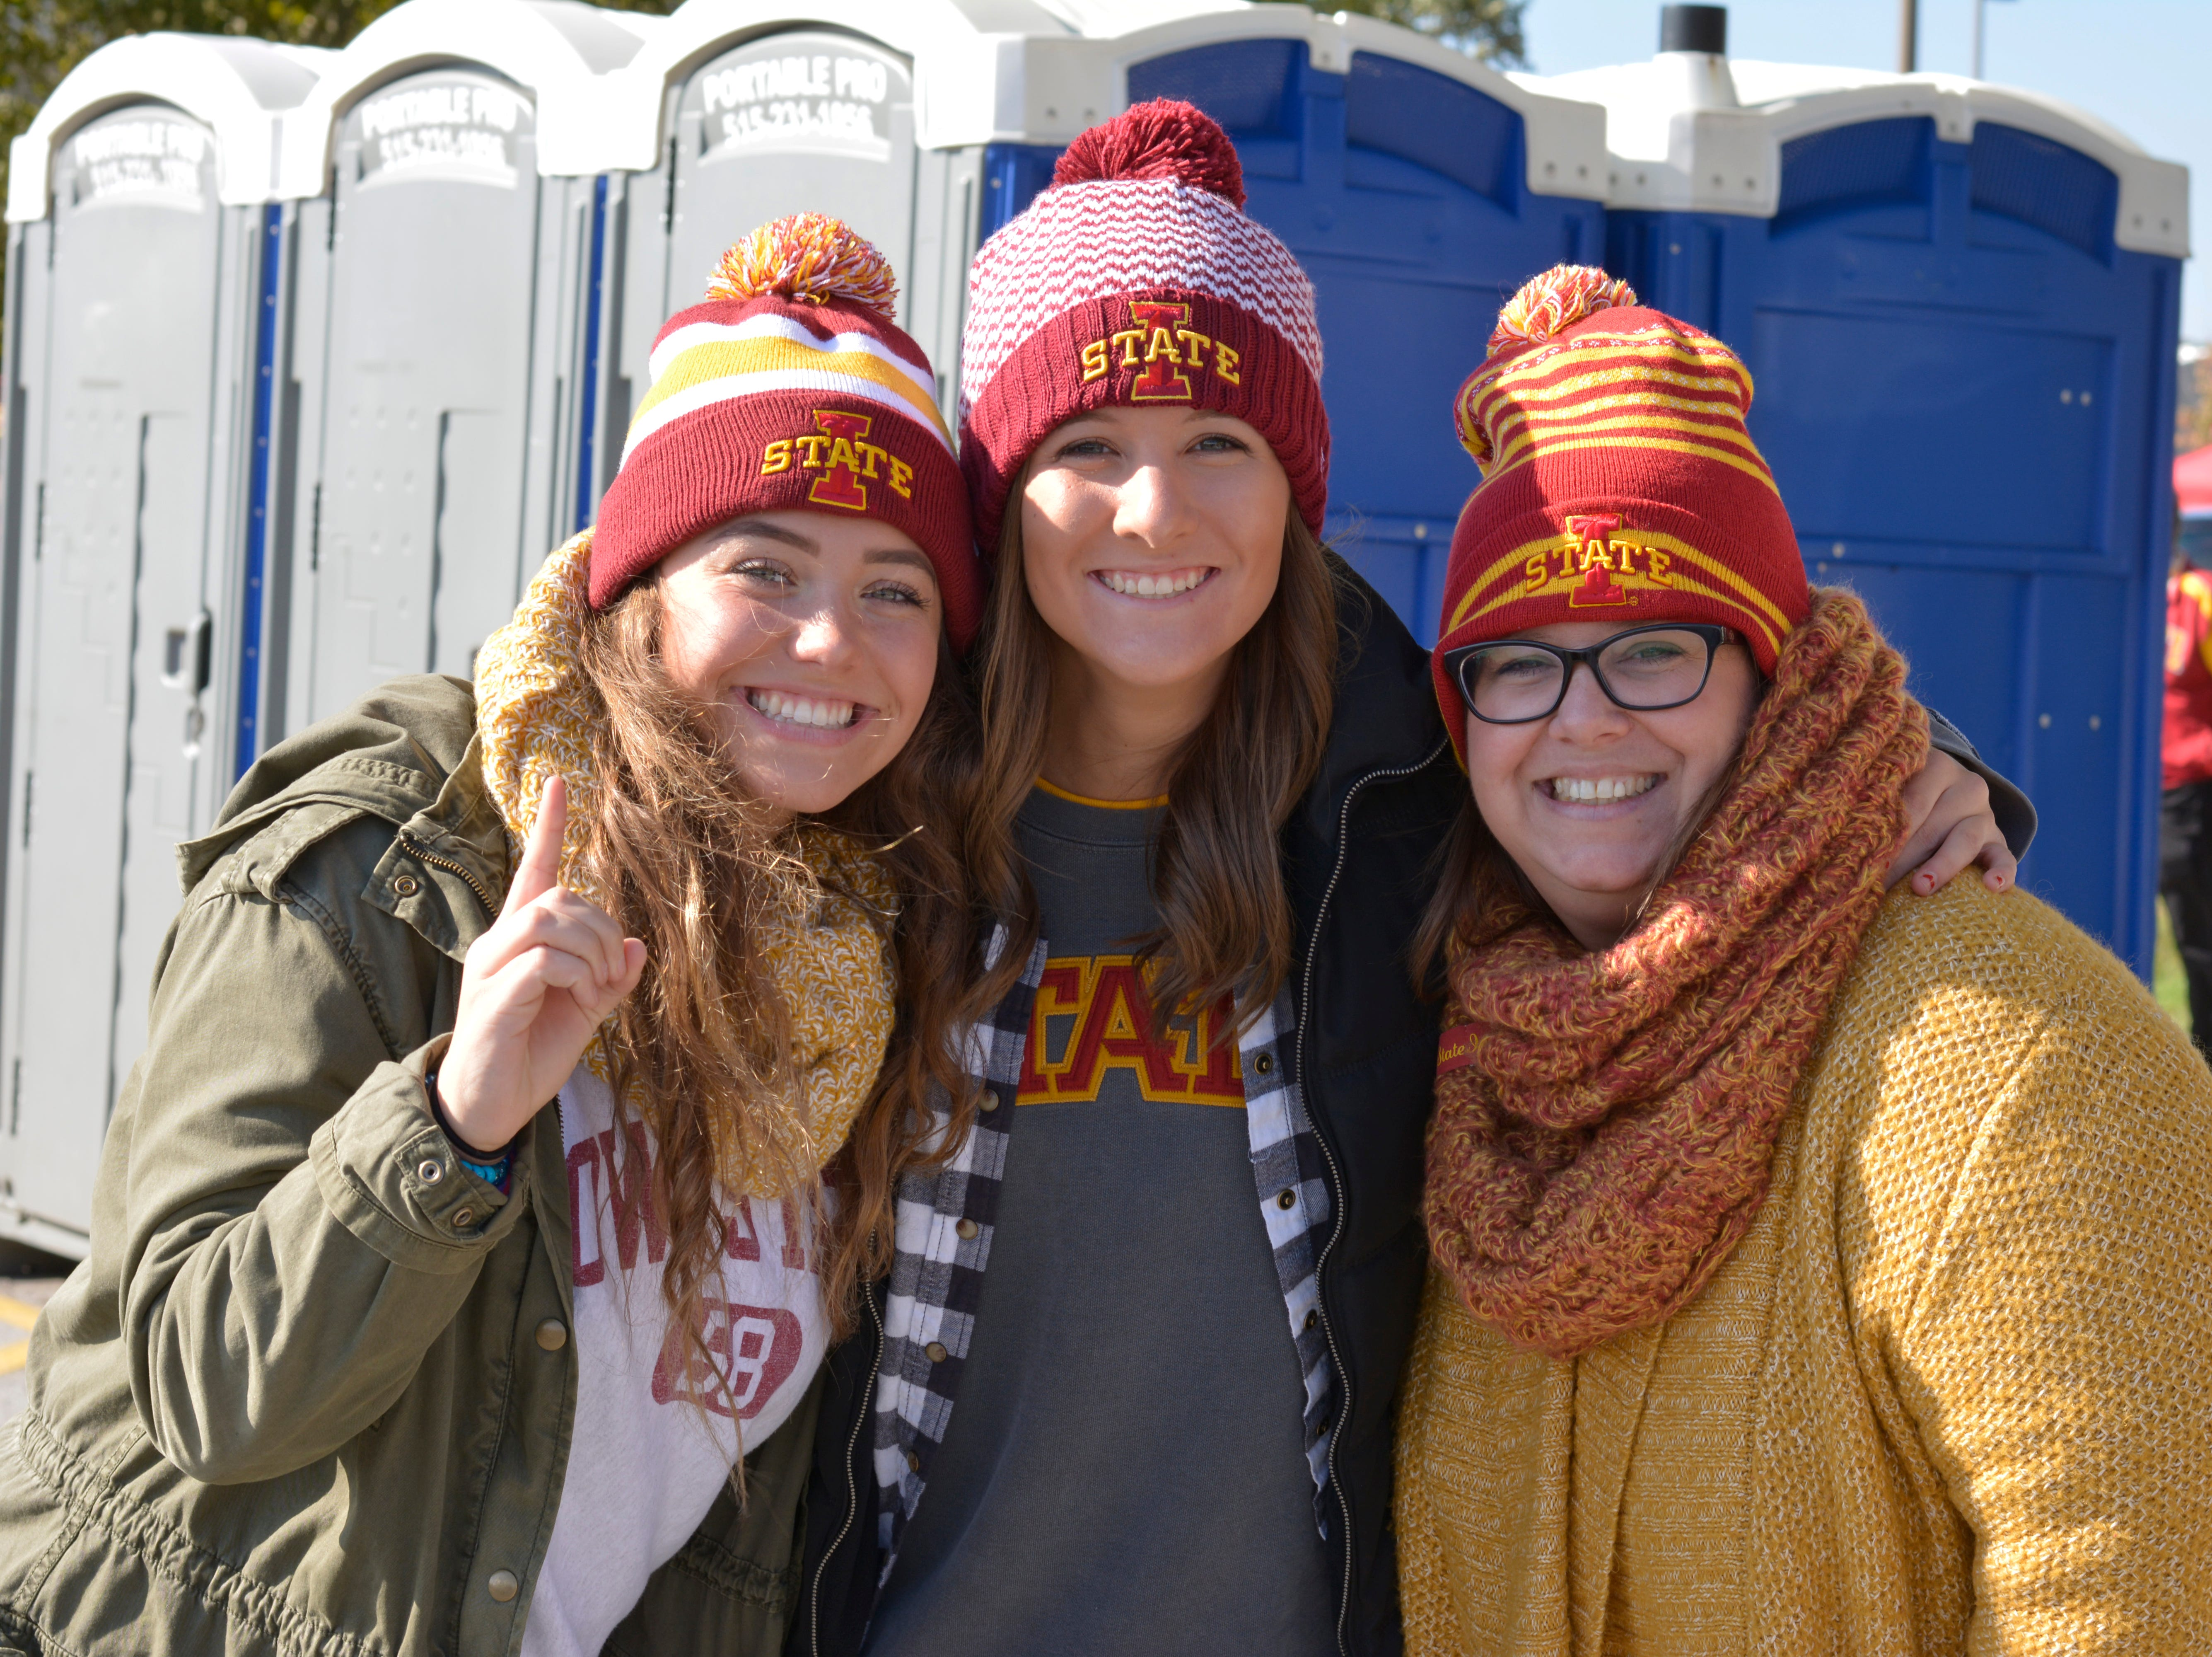 Becca Reece (left), Abi Dimmer (middle) and Stacy Reece (right) before the Iowa State University football game against West Virginia in Ames on Oct. 13.